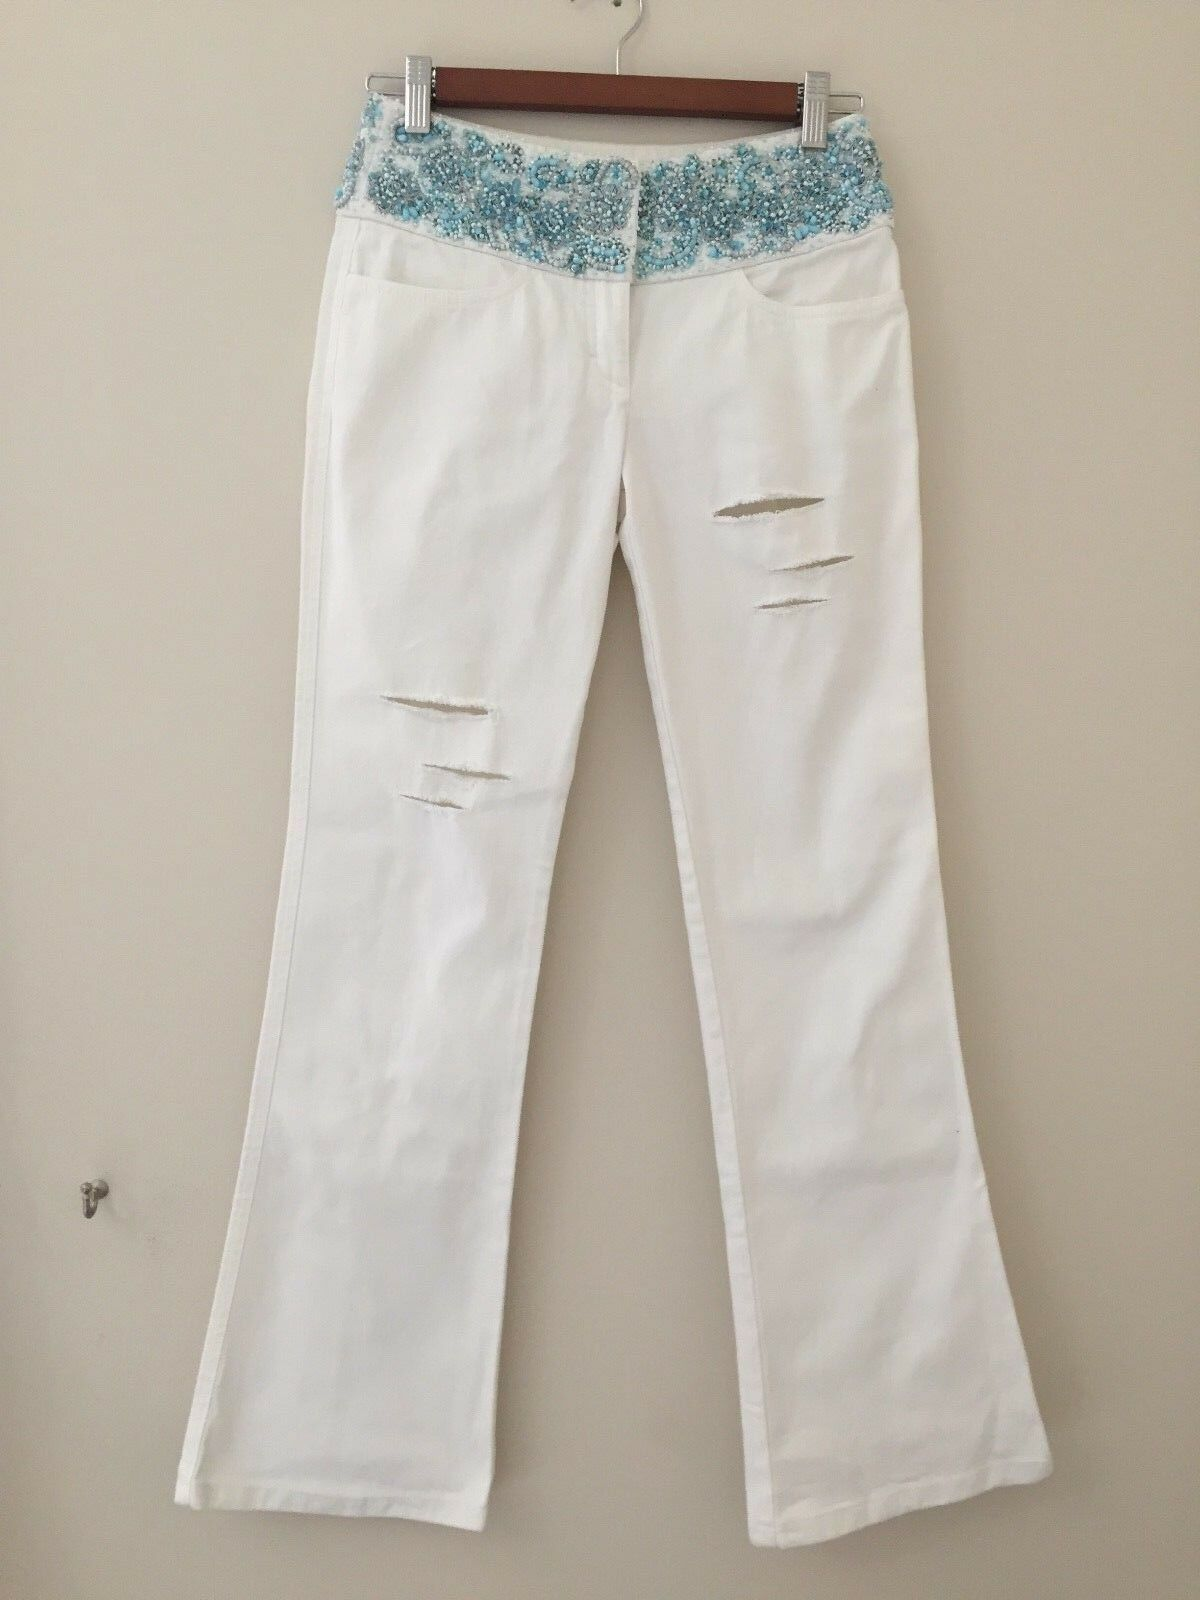 Escada beautiful white summer beaded embroidered jeans size 32 XS